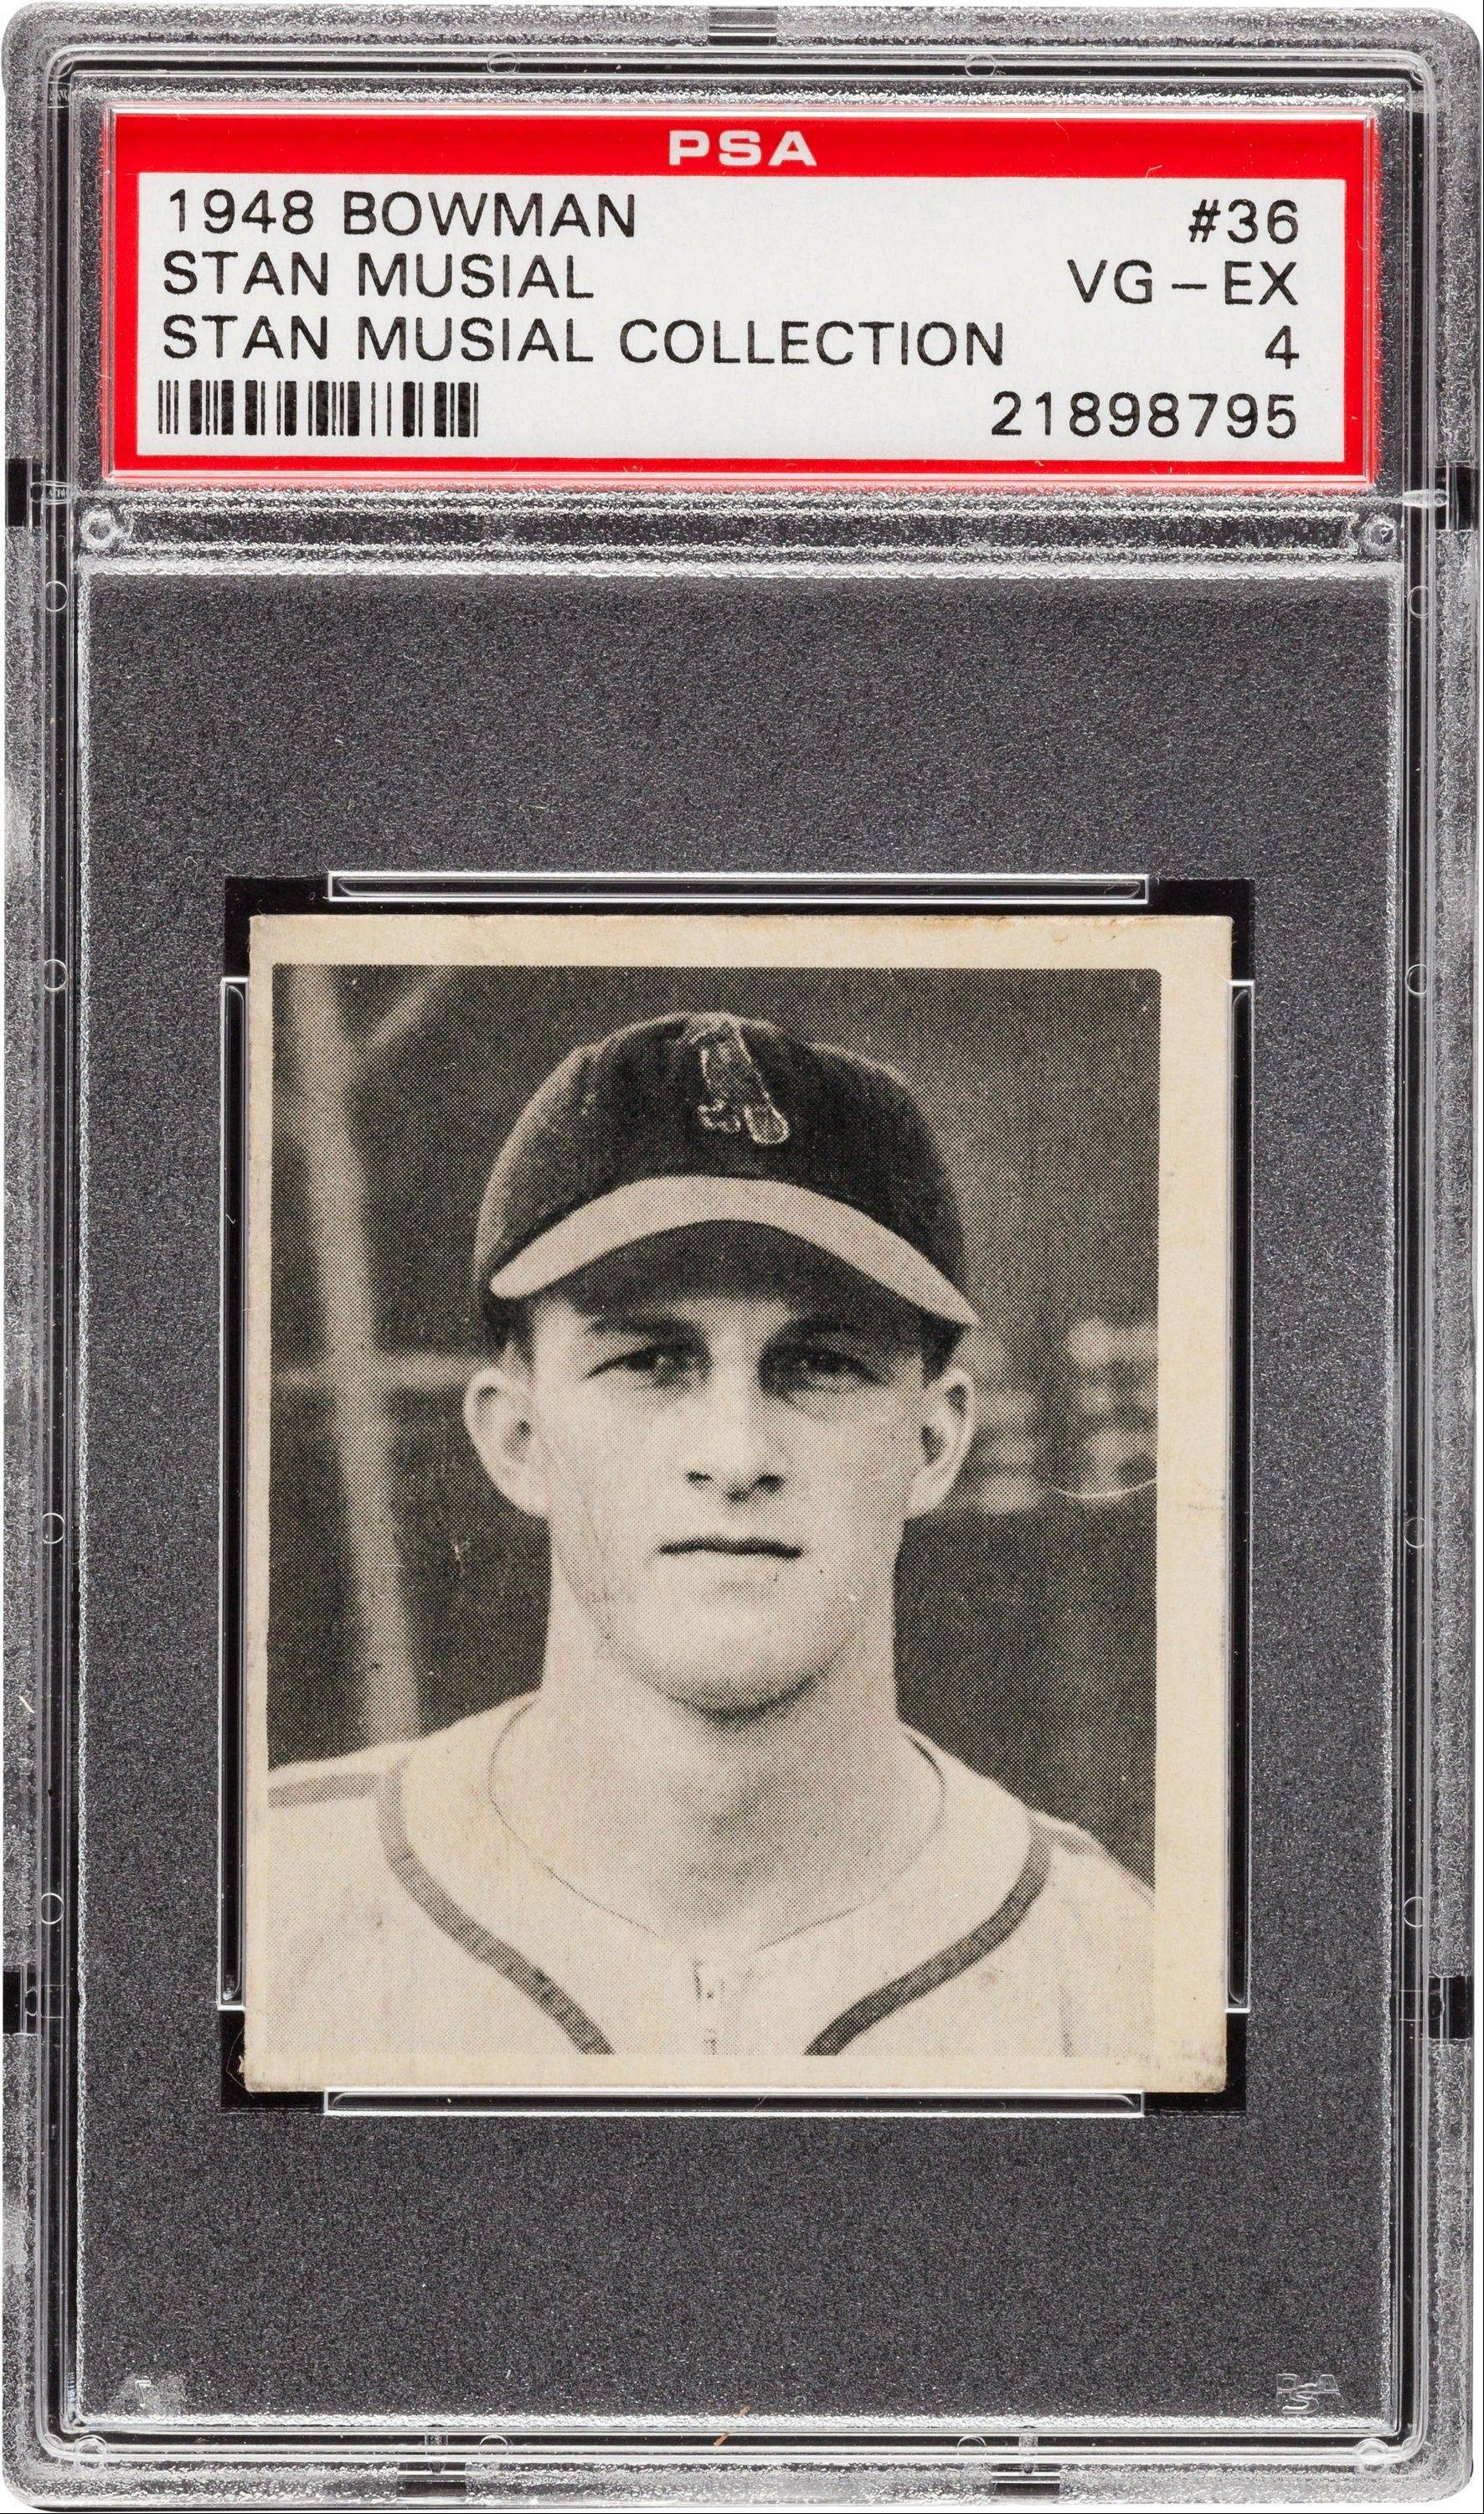 Stan Musial�s personally owned 1948 Bowman rookie baseball card sold for $11,950 at auction. Musial died in January at age 92.